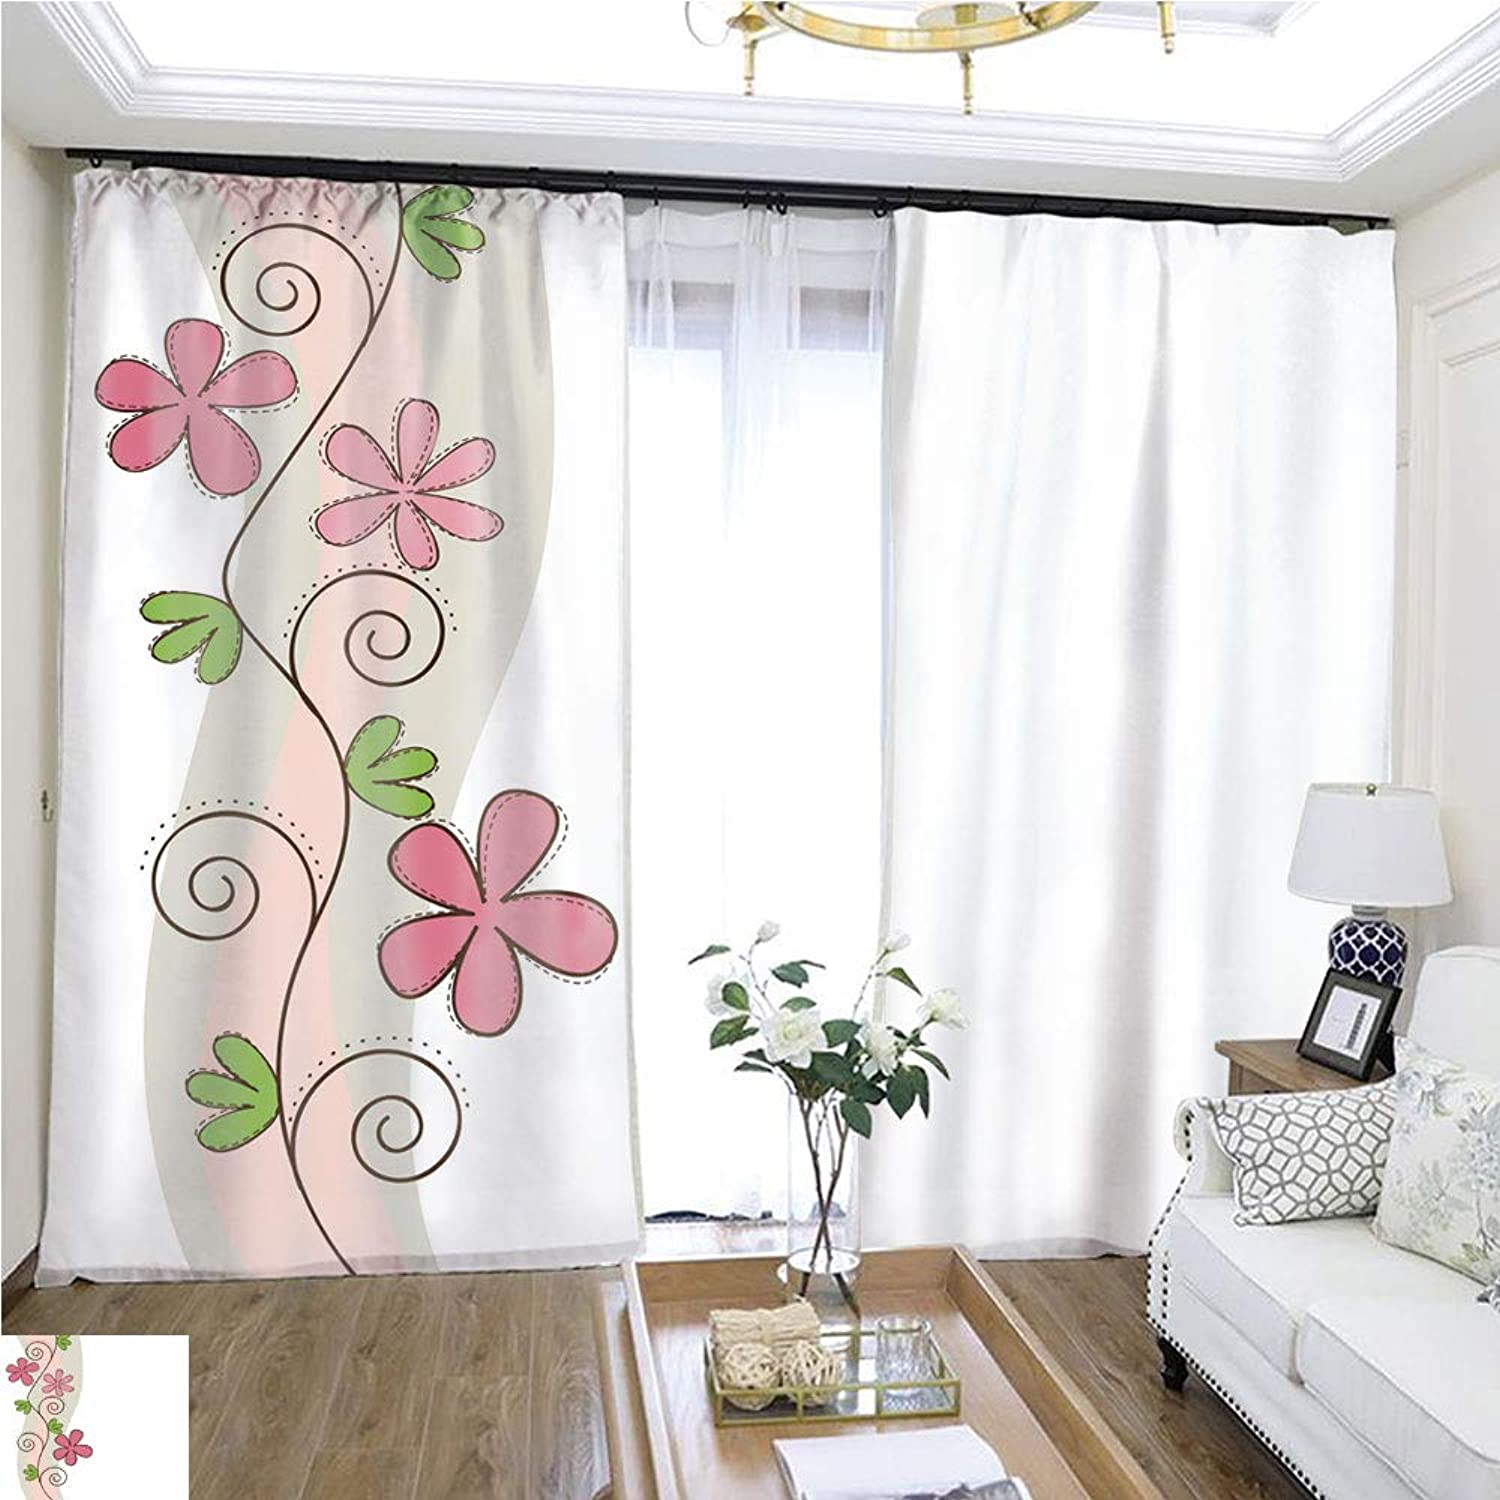 Air Port Screen Cute Flower W108 x L86 Block The Sun Highprecision Curtains for bedrooms Living Rooms Kitchens etc.